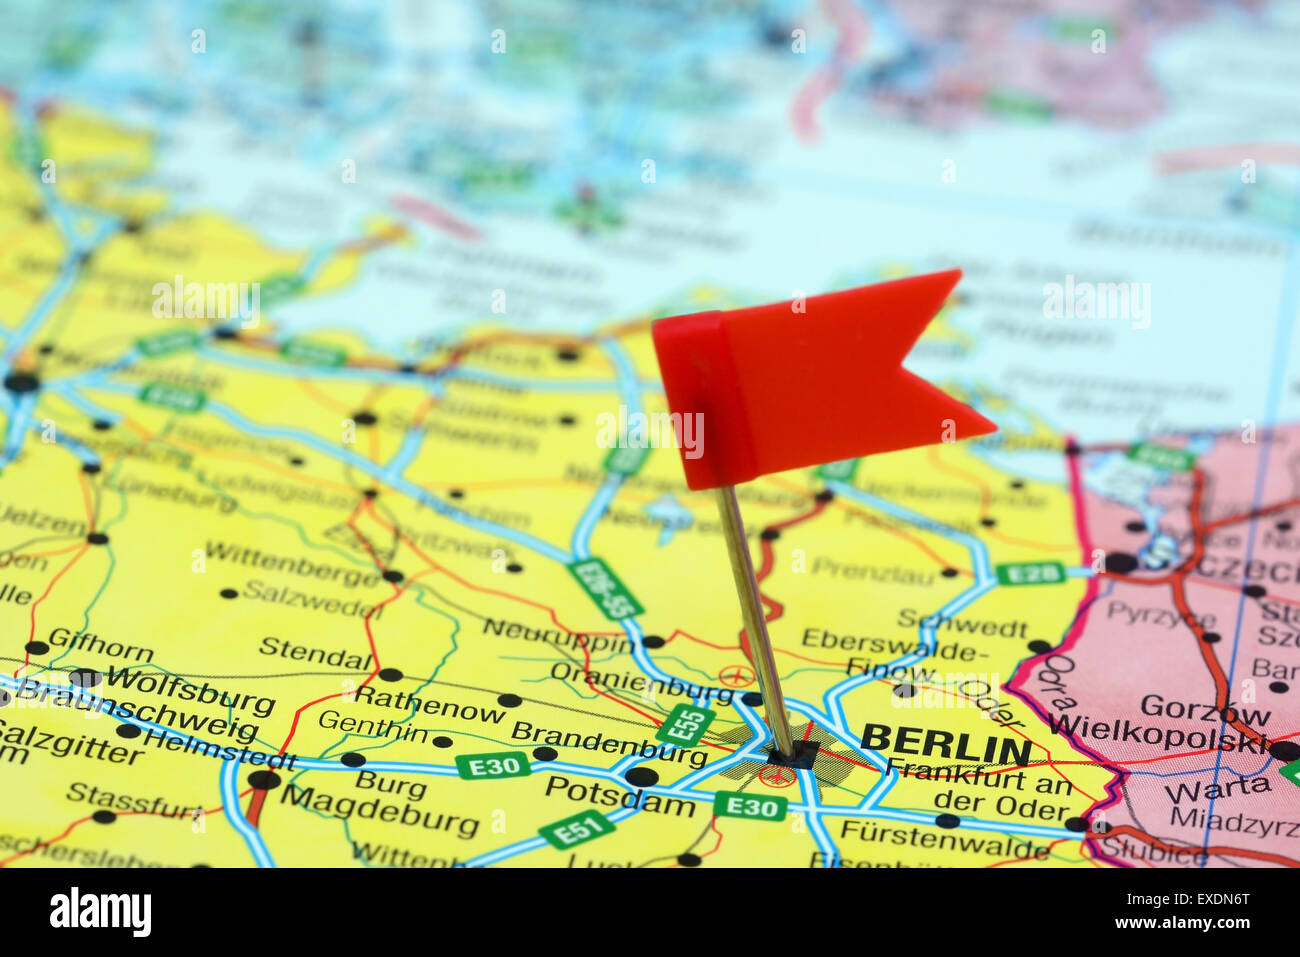 Berlin Pinned On A Map Of Europe Stock Photo 85124560 Alamy